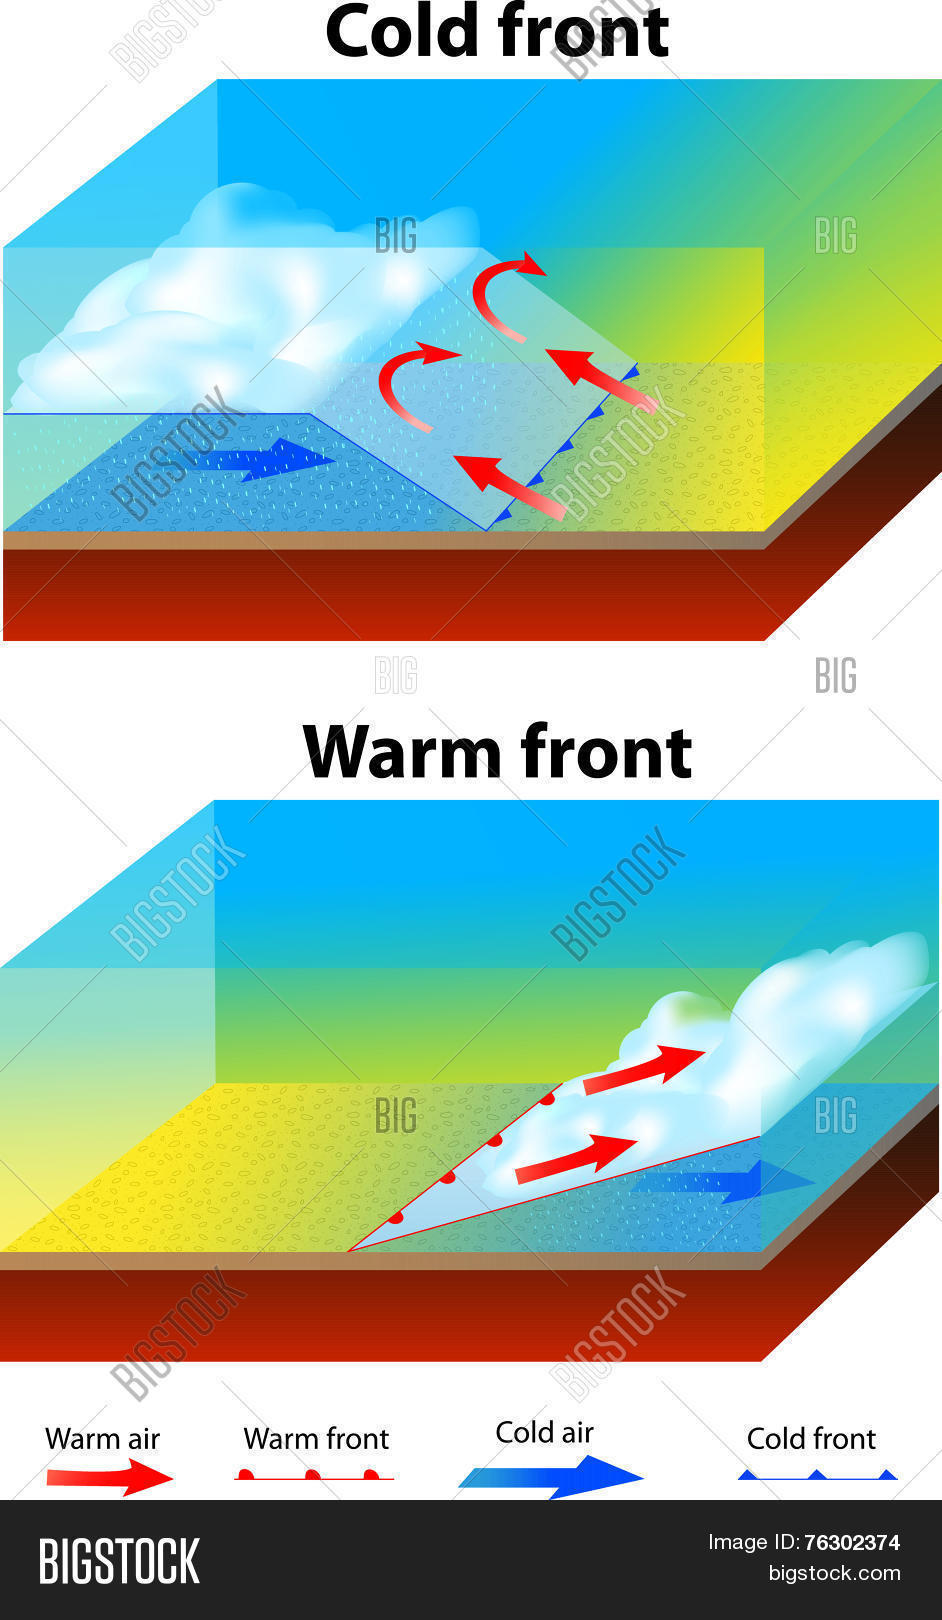 Pictures of cold fronts Cold Fronts - Home Facebook